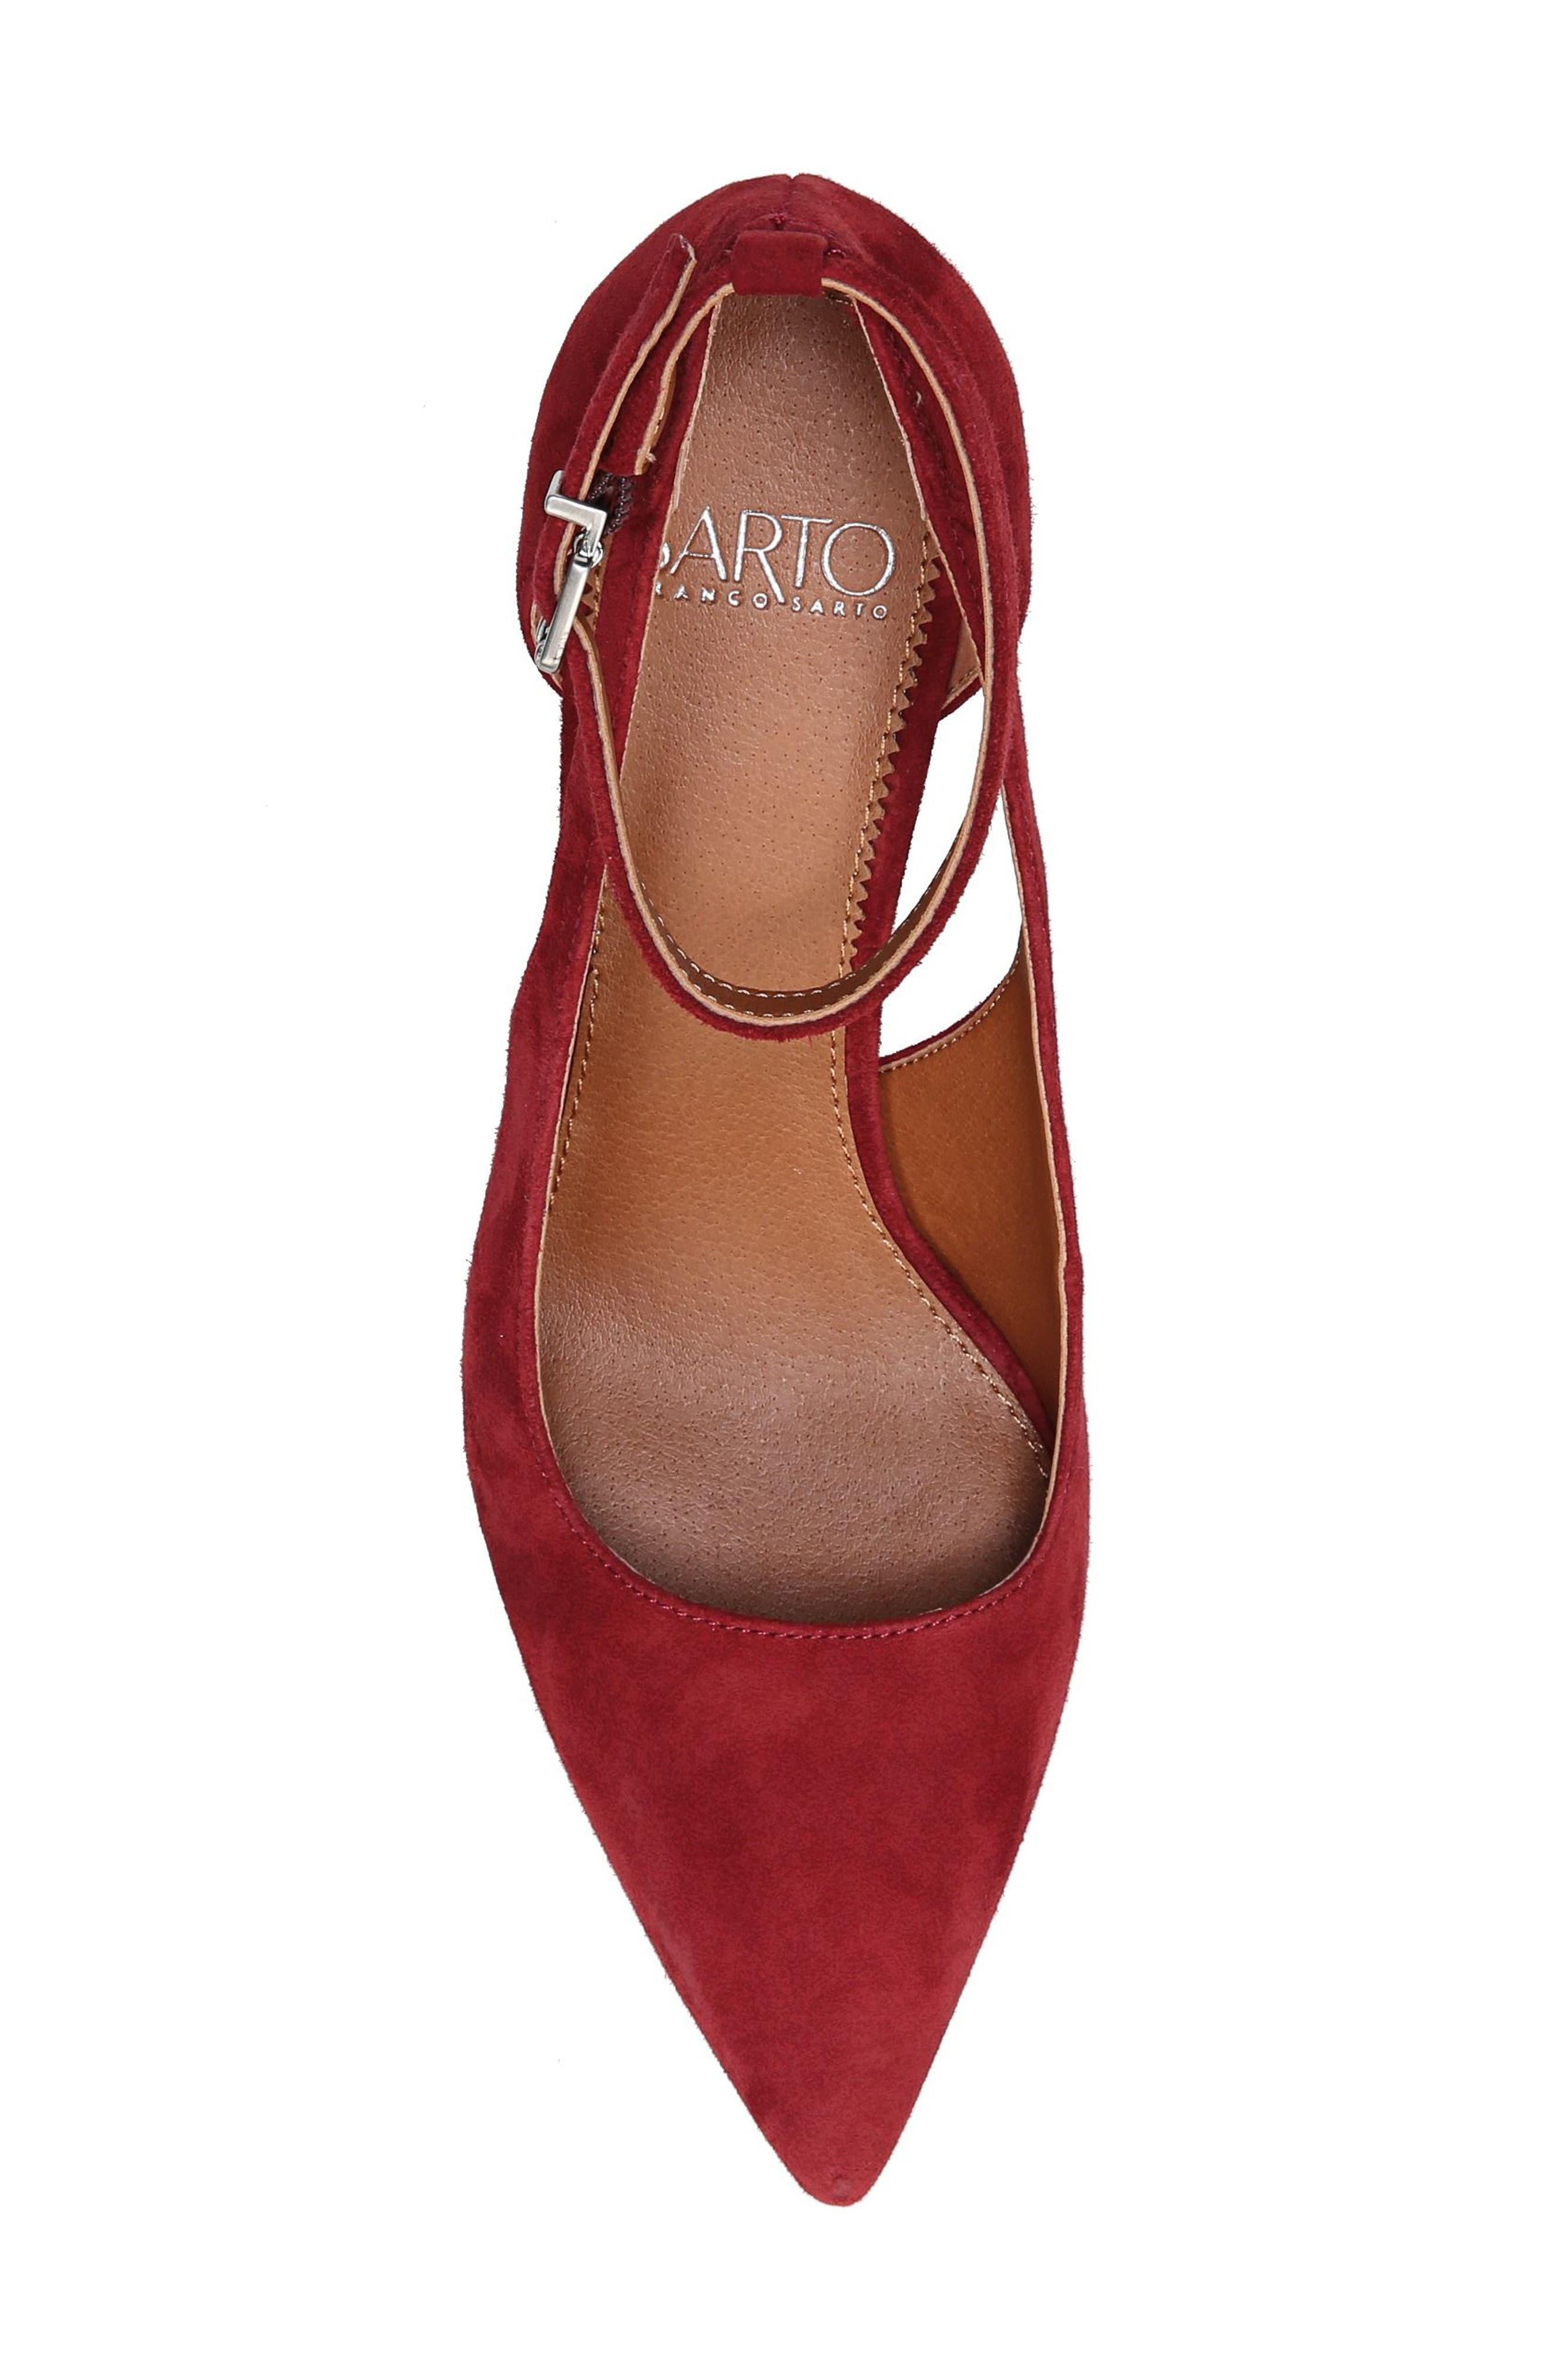 Kalindi Pump,                             Alternate thumbnail 6, color,                             Syrah Suede